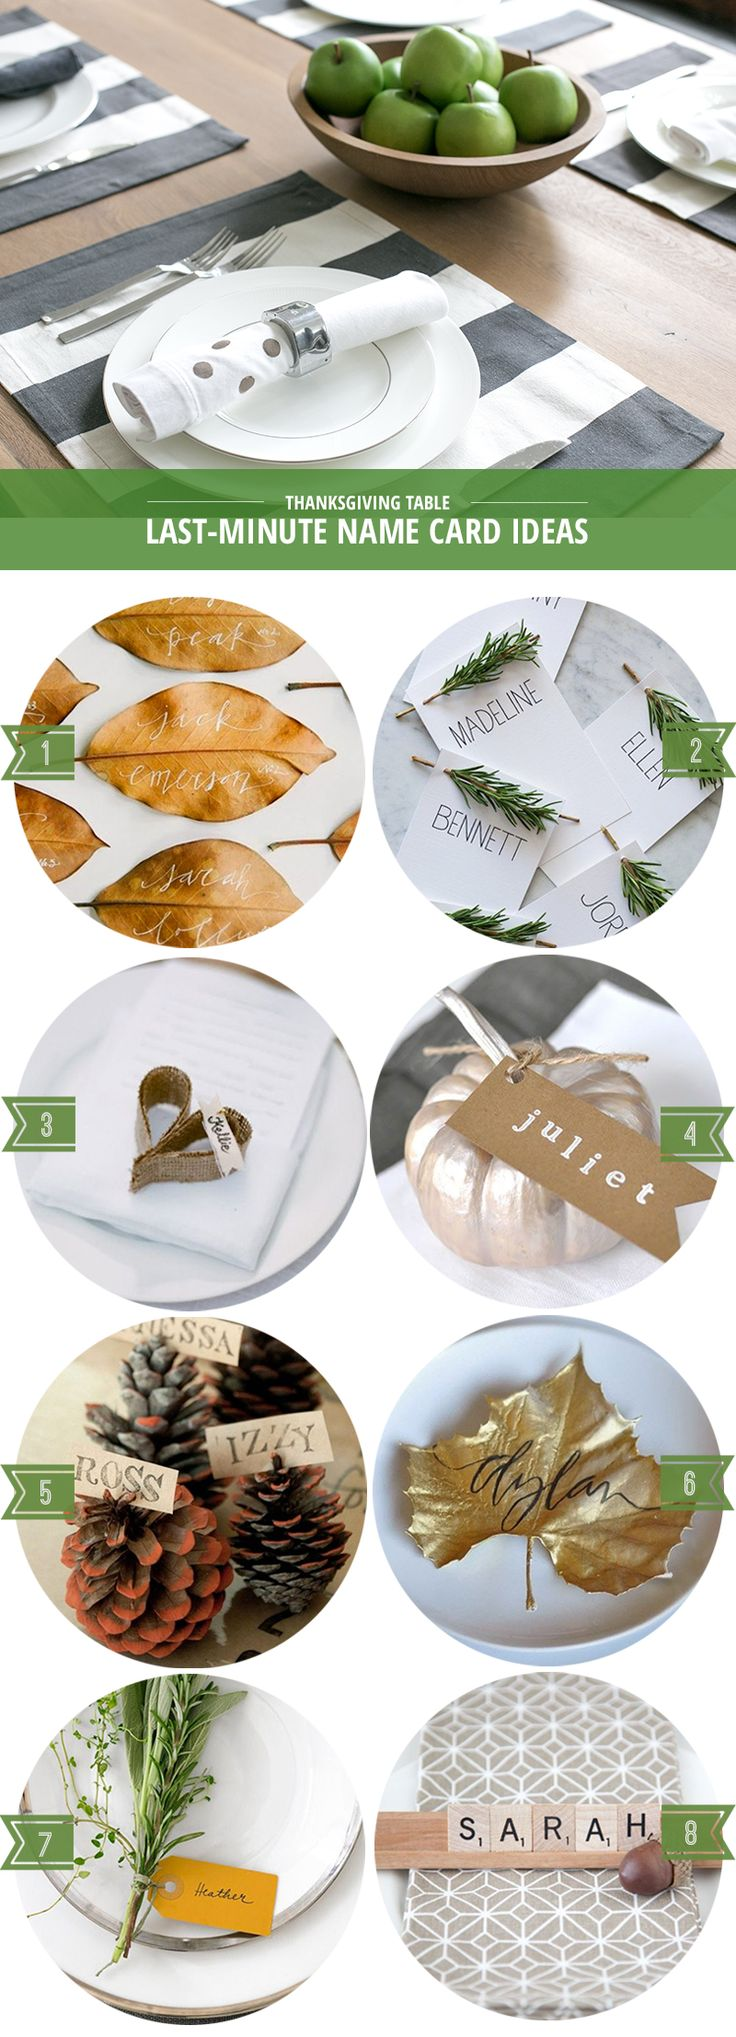 Last-minute ideas for Thanksgiving name cards that are simple to make and use materials you likely have on hand.